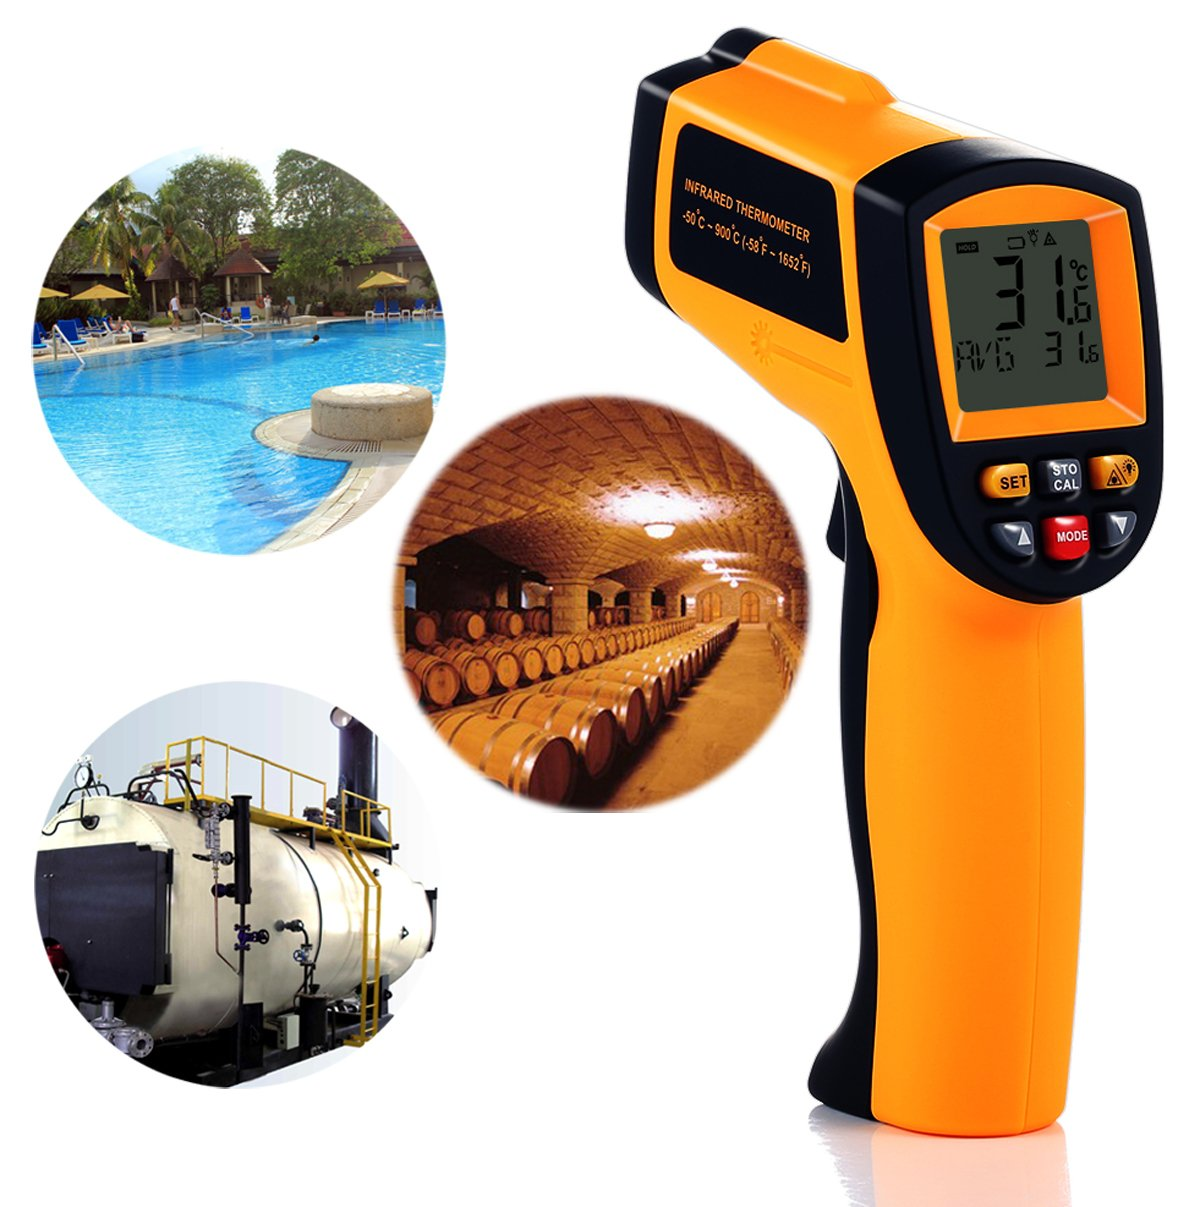 Tekit Non-Contact Laser Infrared Digital Thermometer, -50 ~ 900℃ Temperature Measuring Range, Handheld Laser Target Pointer / Backlight / Auto Power On/Off by Tekit (Image #6)